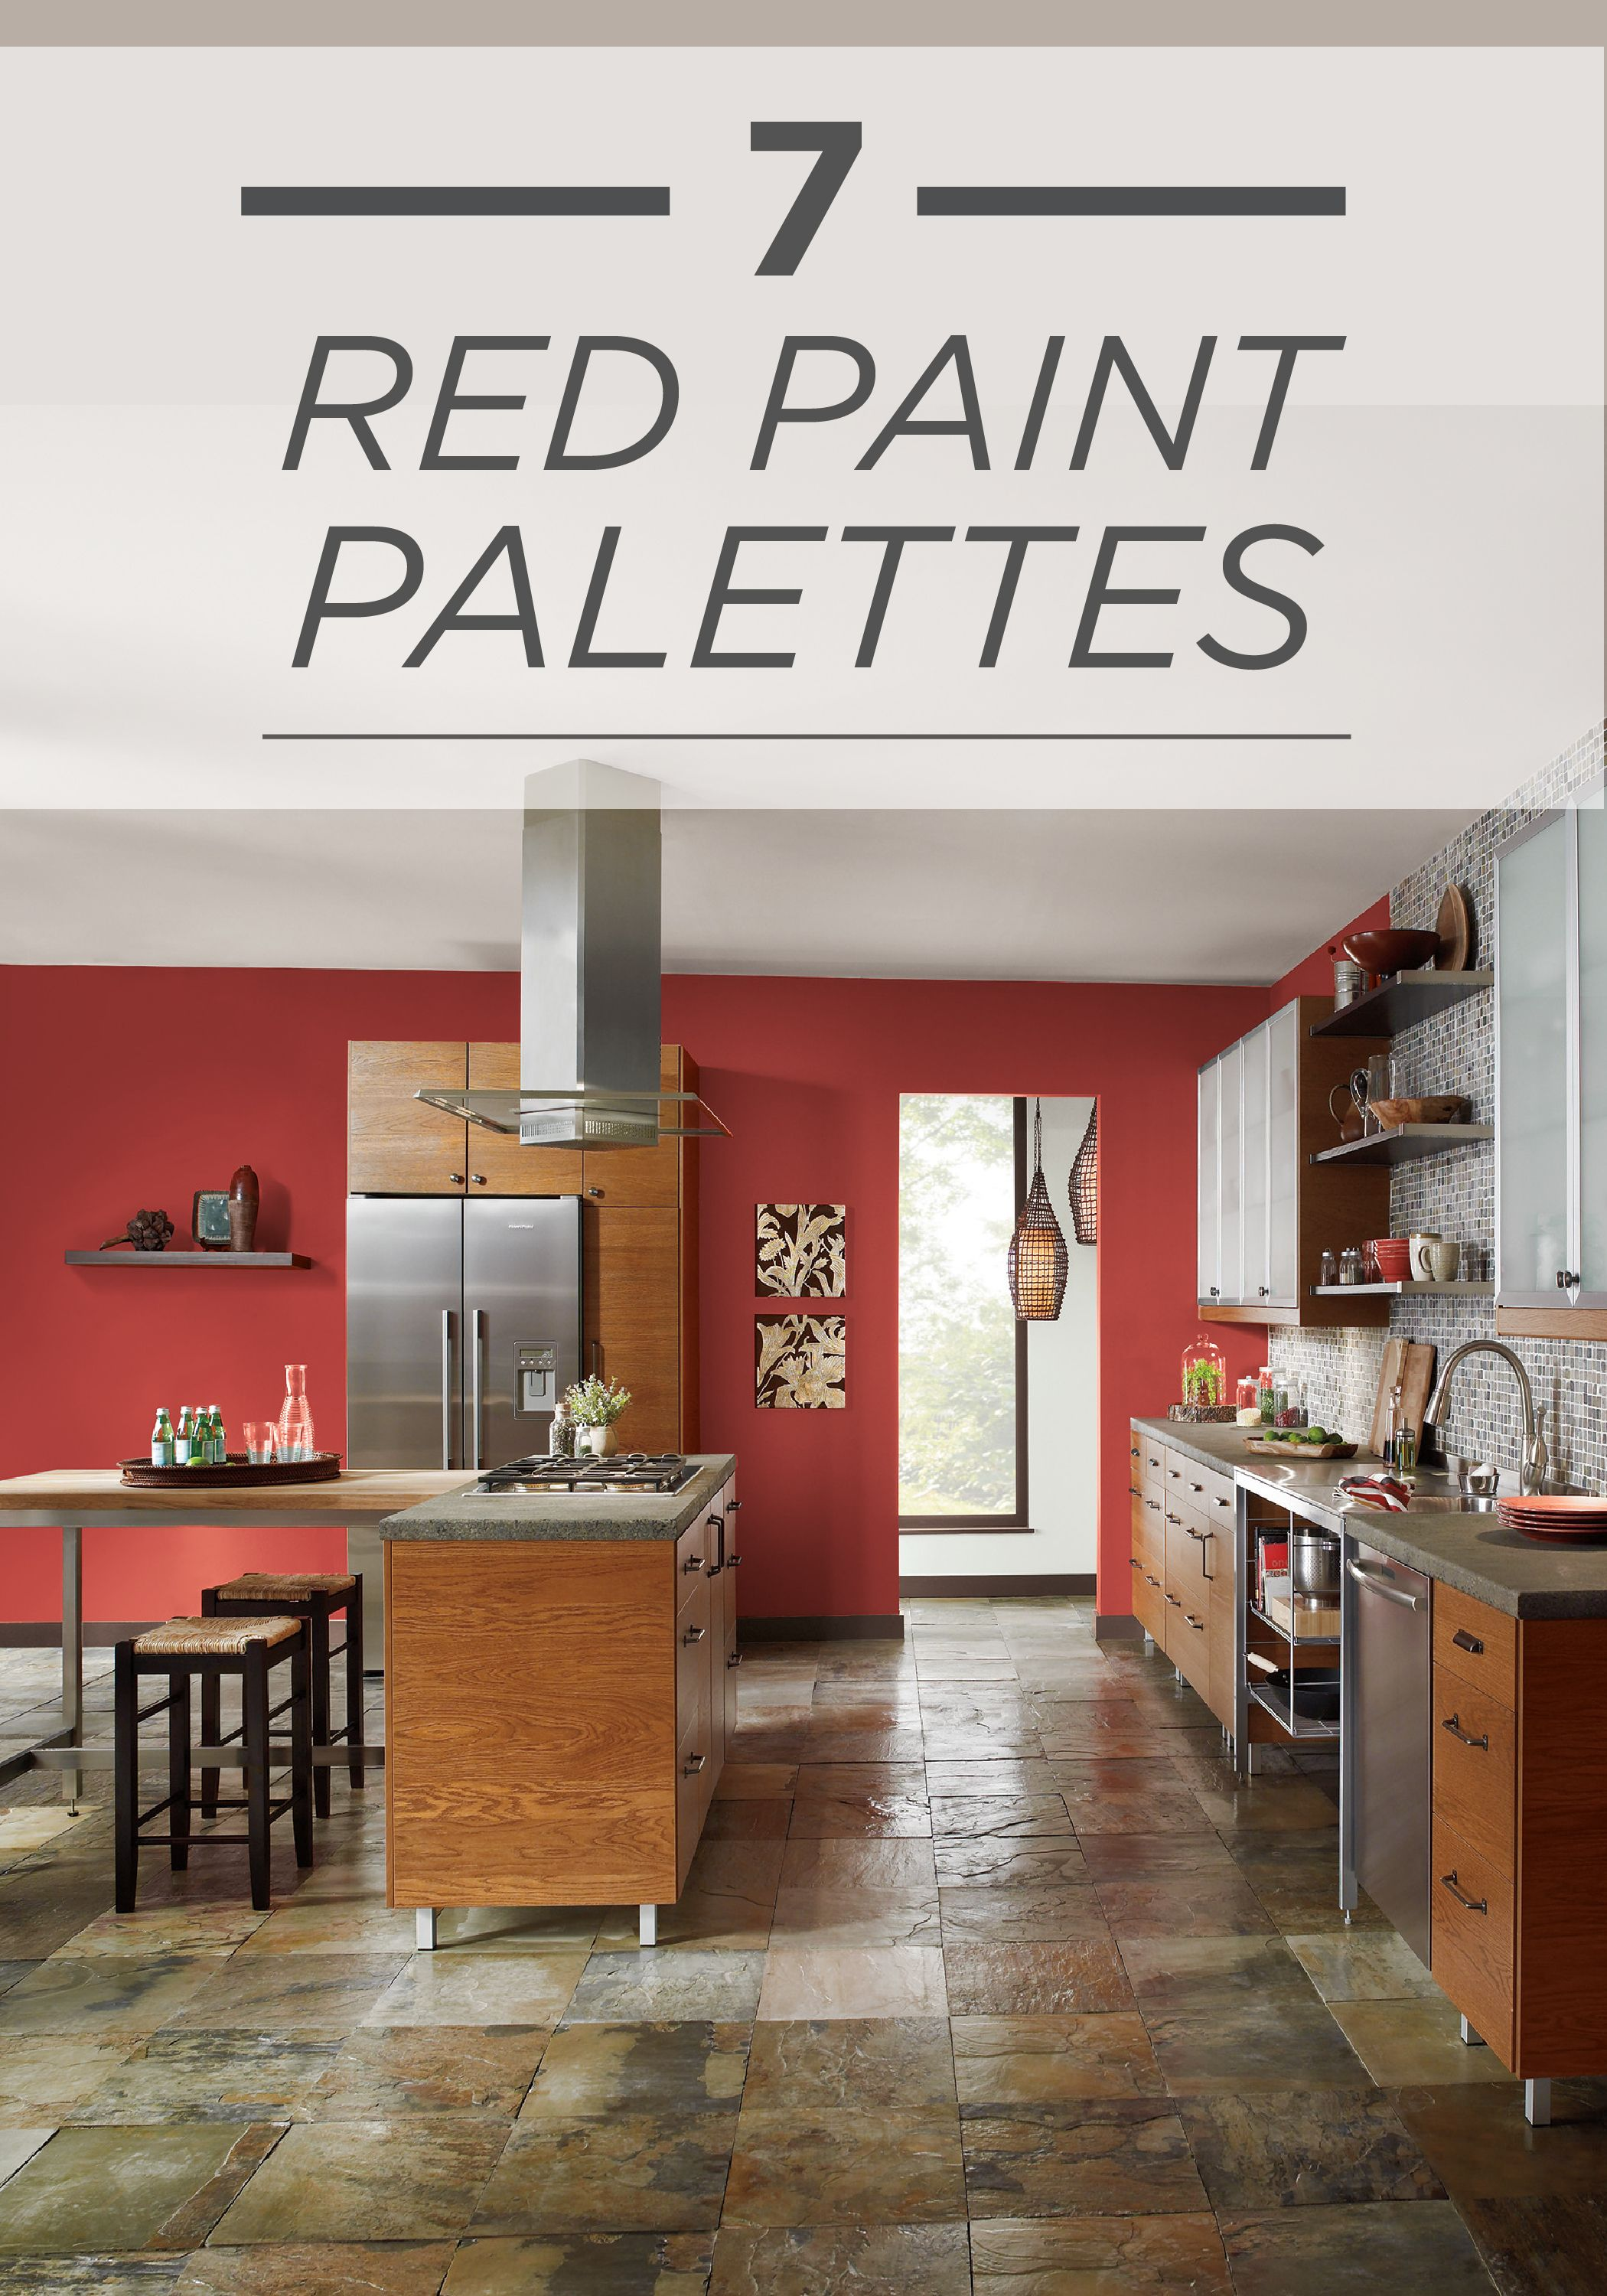 Merveilleux BEHR Paint In Raging Bull Red Creates A Spicy Backdrop To Your Modern And  Streamlined Kitchen. Not Only Will This Bold Color Choice Bring A Sense Of  ...